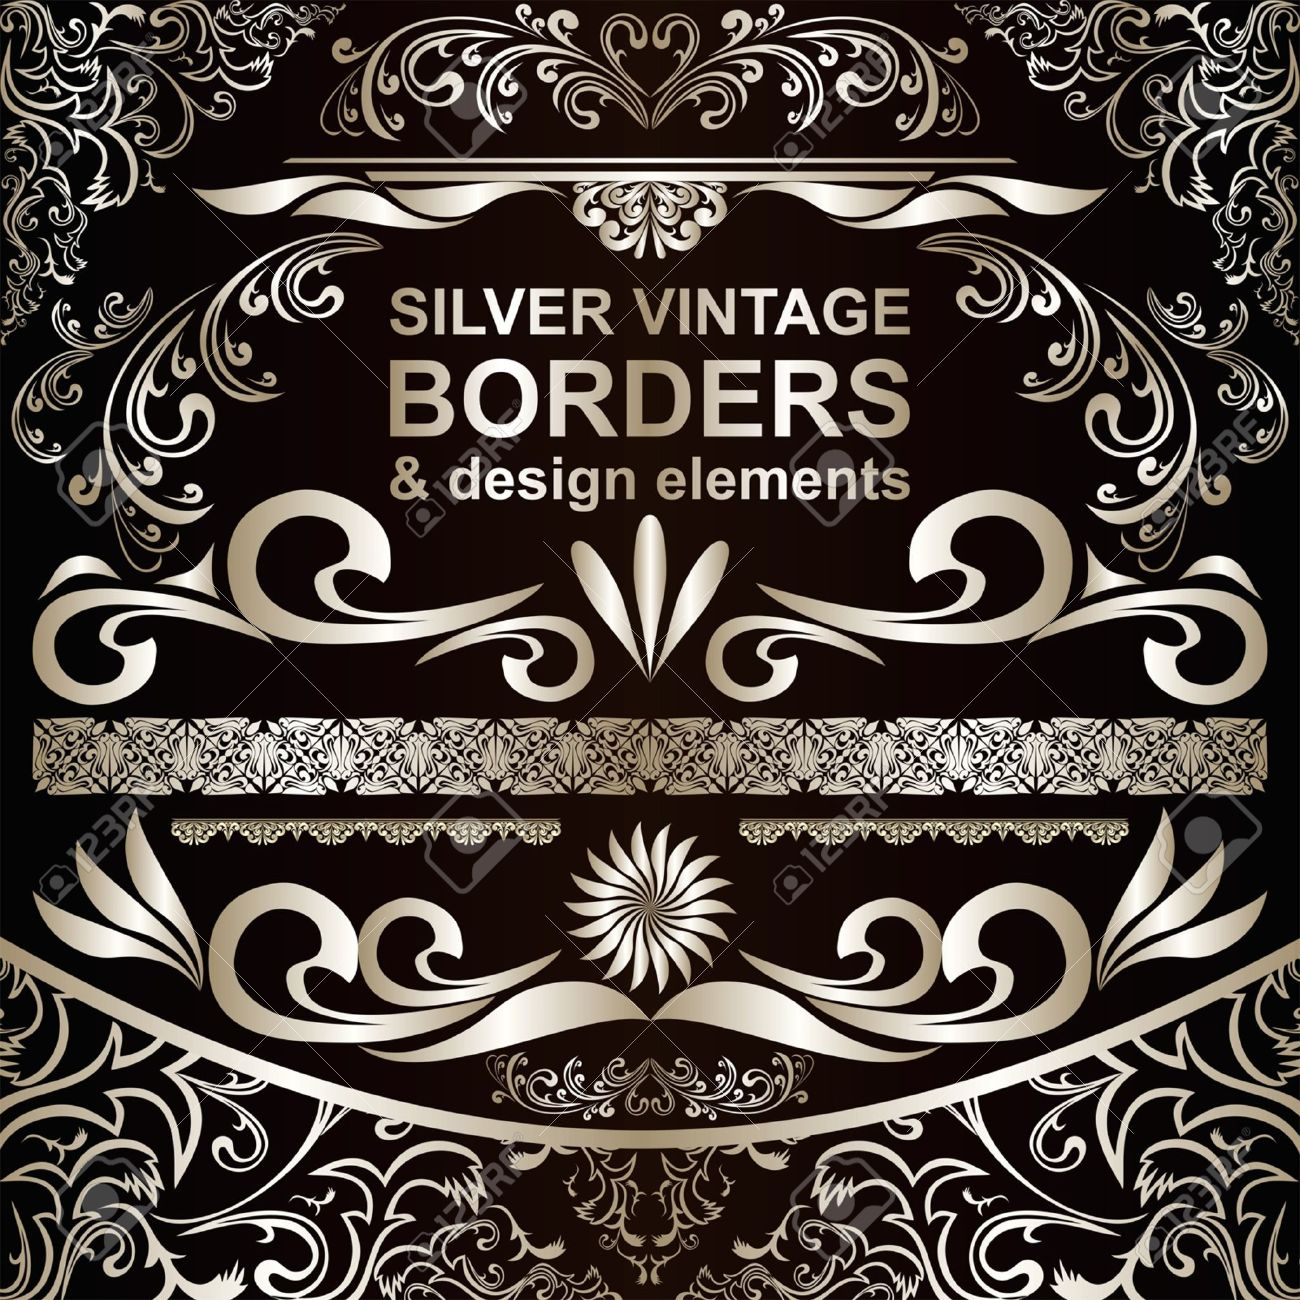 silver vintage borders and design elements royalty free cliparts